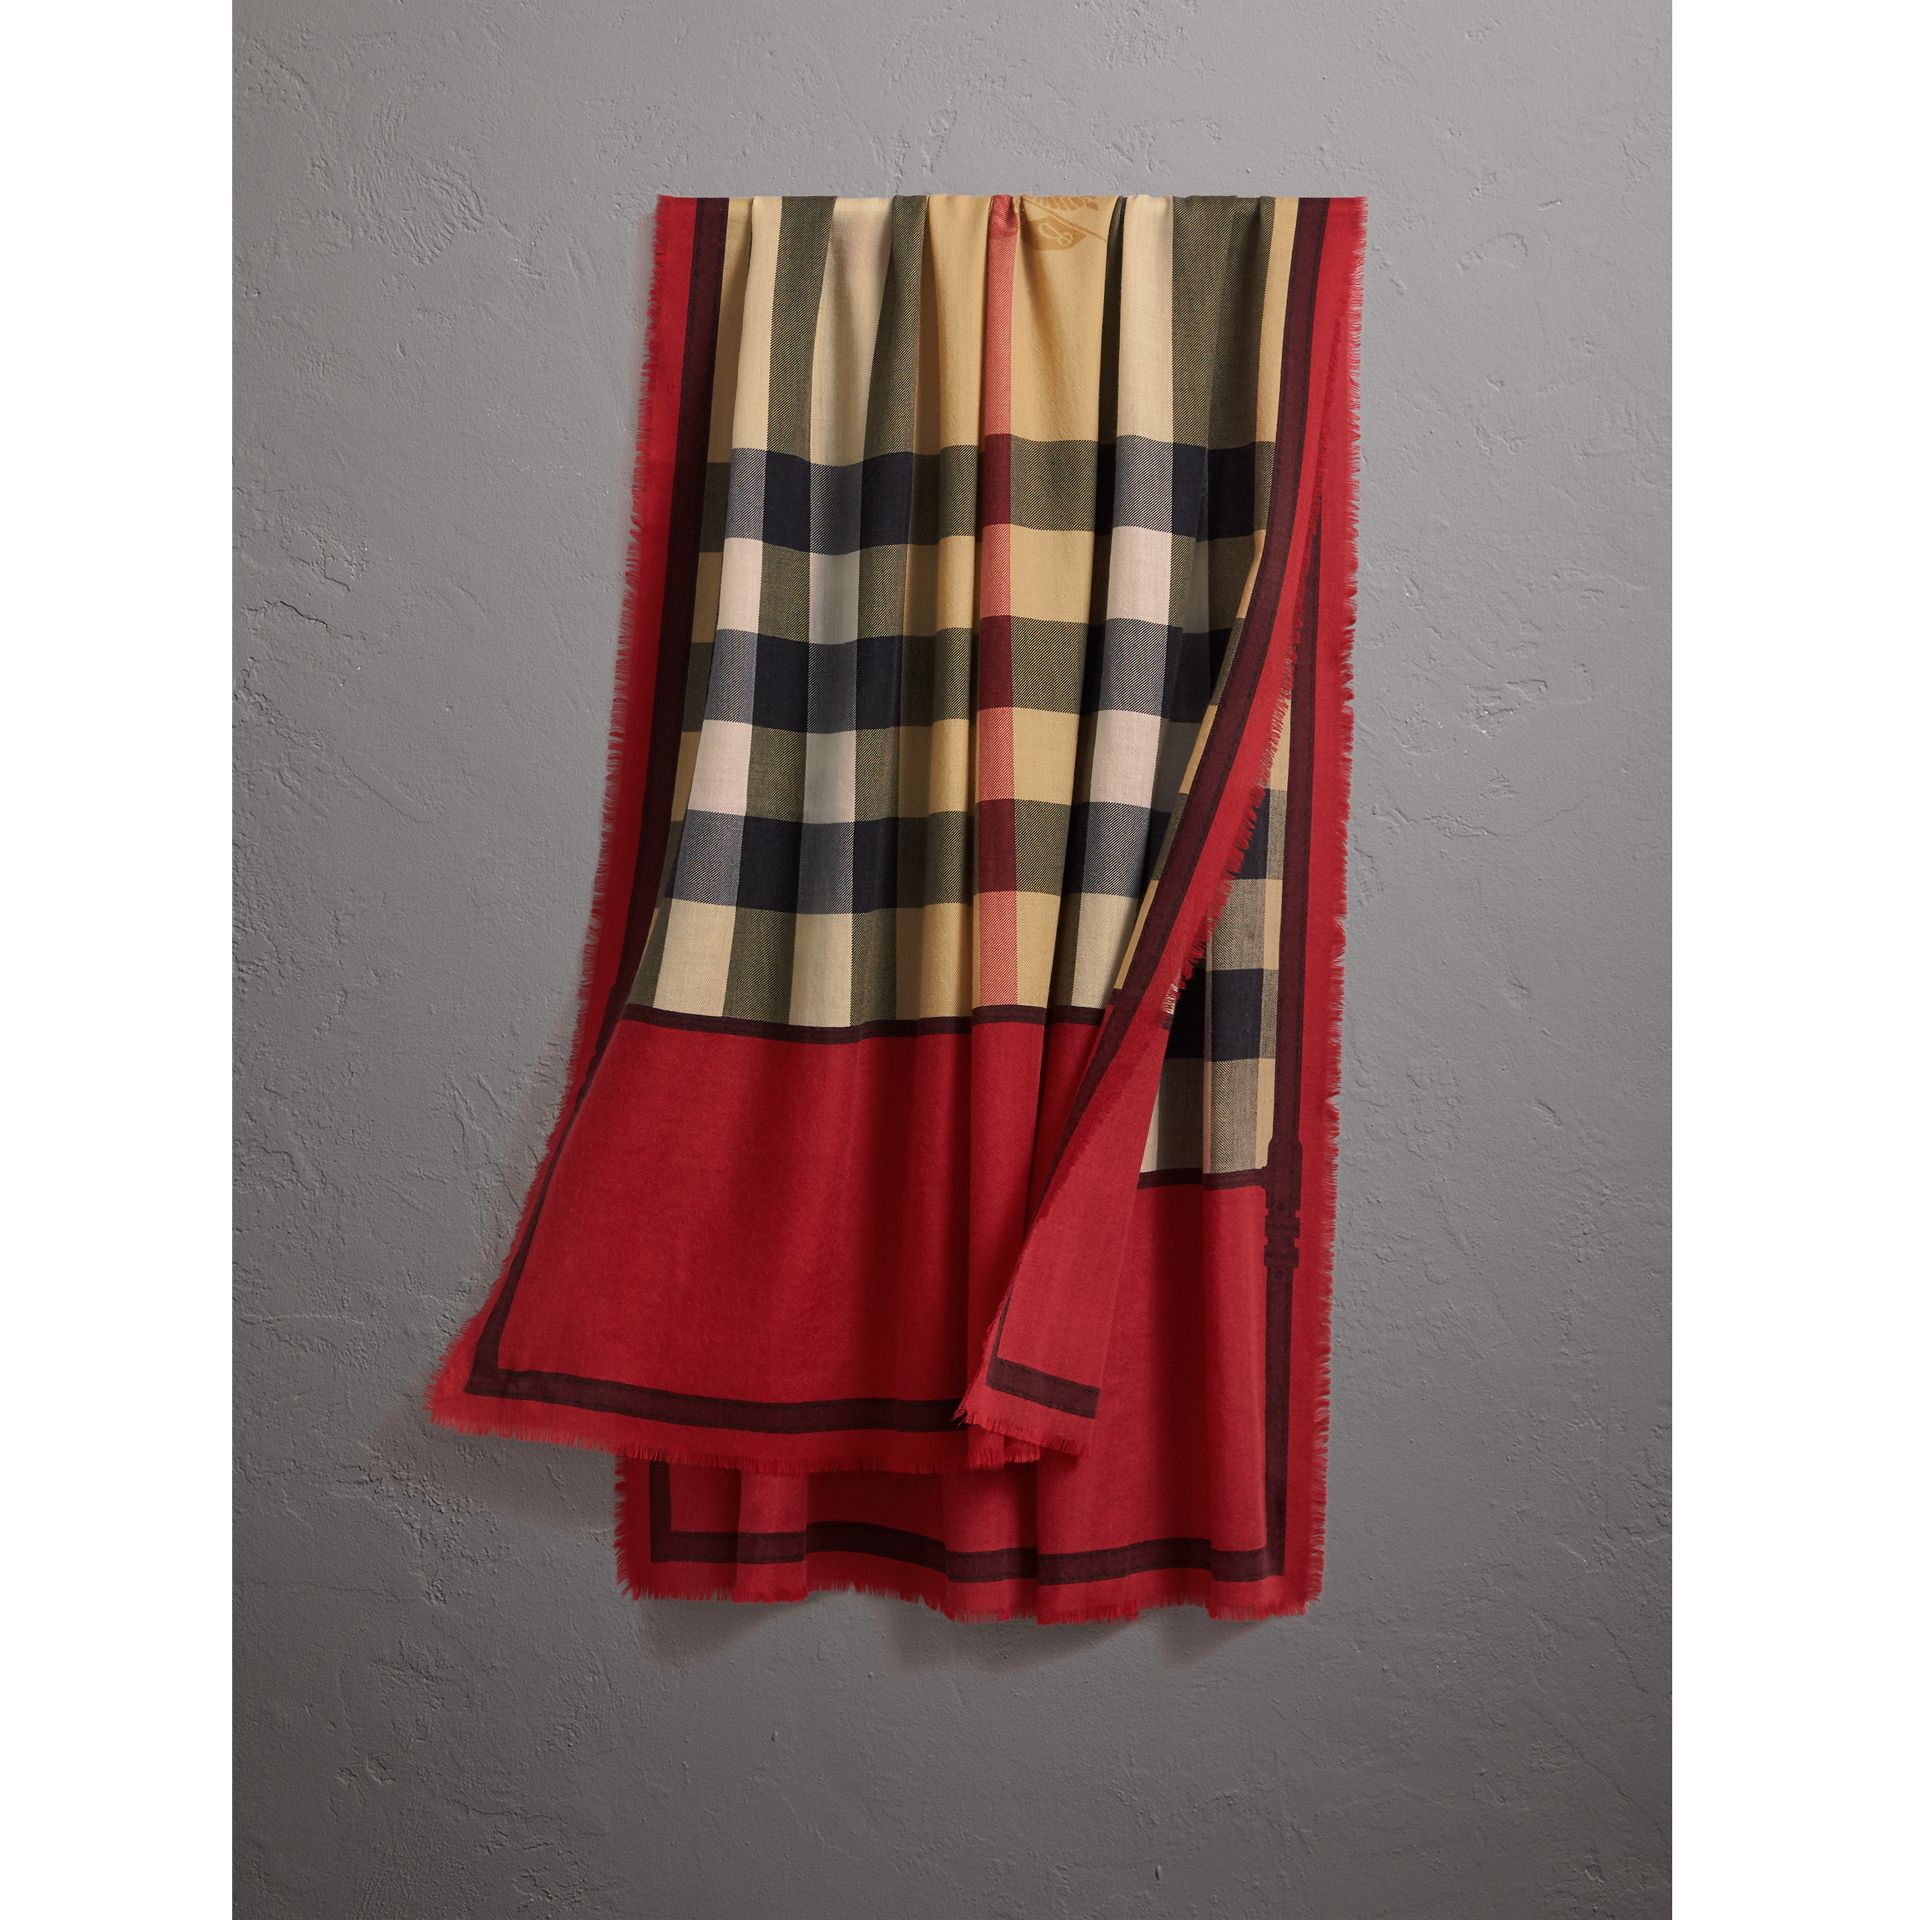 Contrast Border Horseferry Check Cashmere Scarf in Parade Red - Women | Burberry Australia - gallery image 1